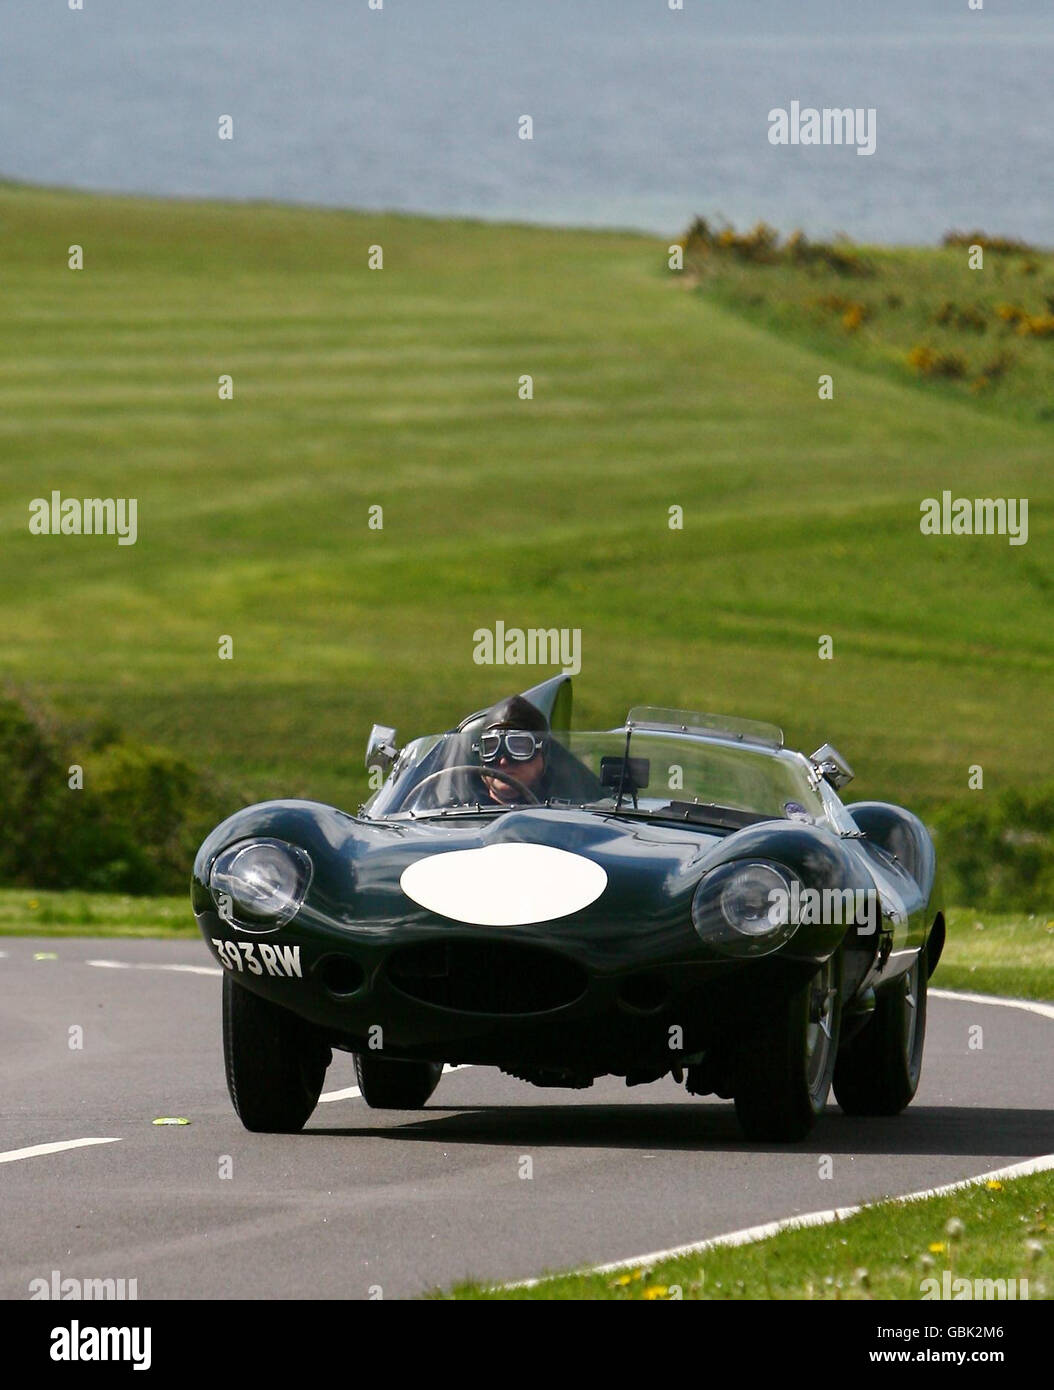 Mike hawthorn stock photos mike hawthorn stock images for Moss motors used cars airport